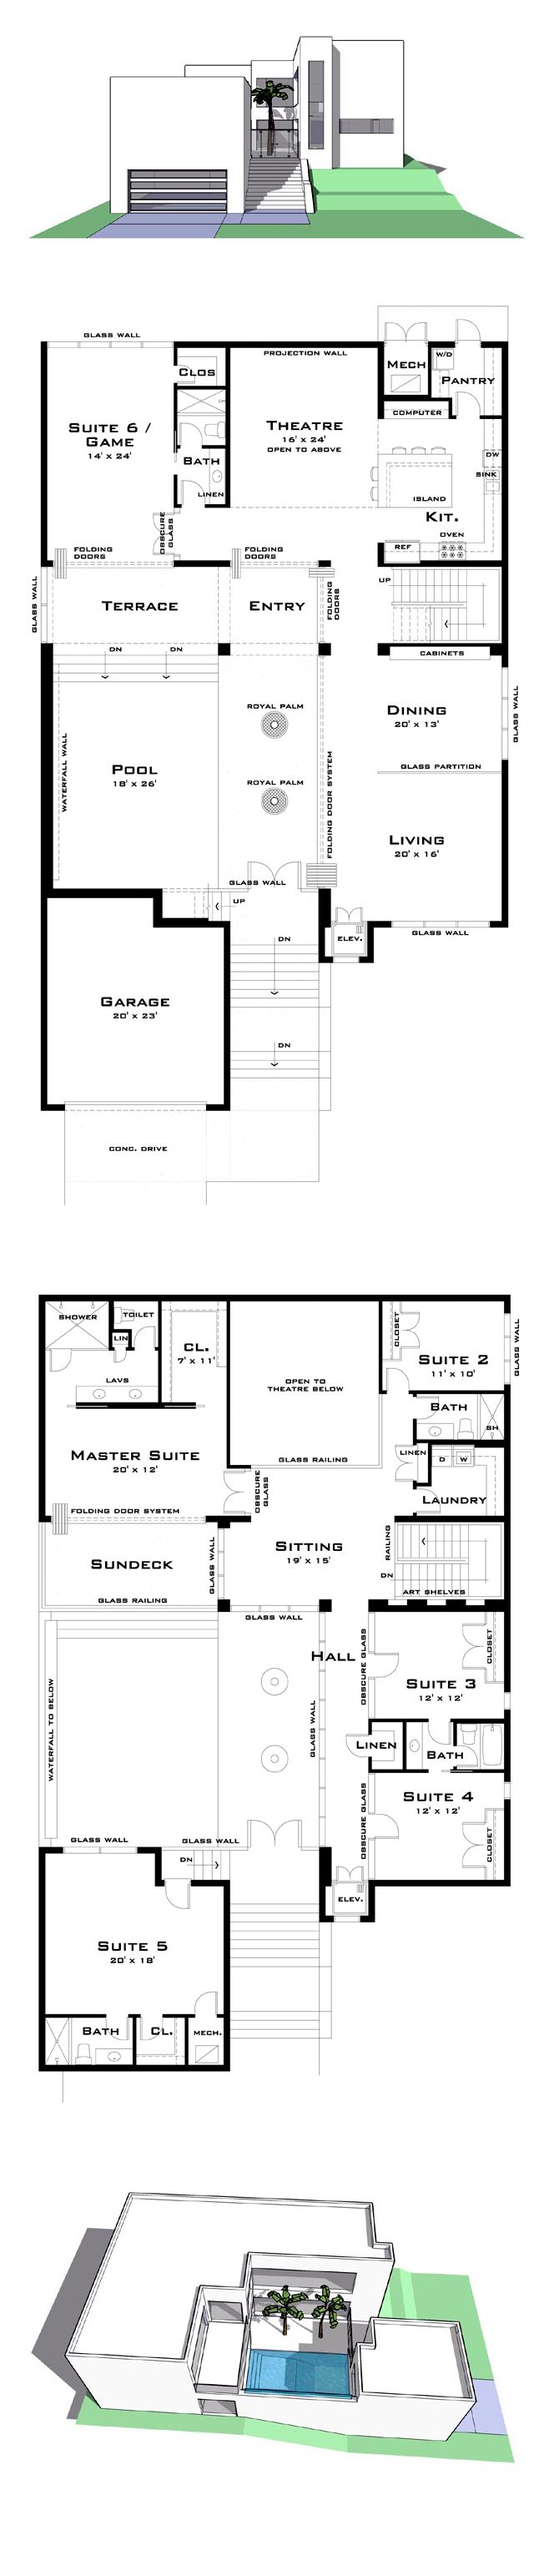 1012 best floorplans images on pinterest architecture modern cool house plans offers a unique variety of professionally designed home plans with floor plans by accredited home designers styles include country house